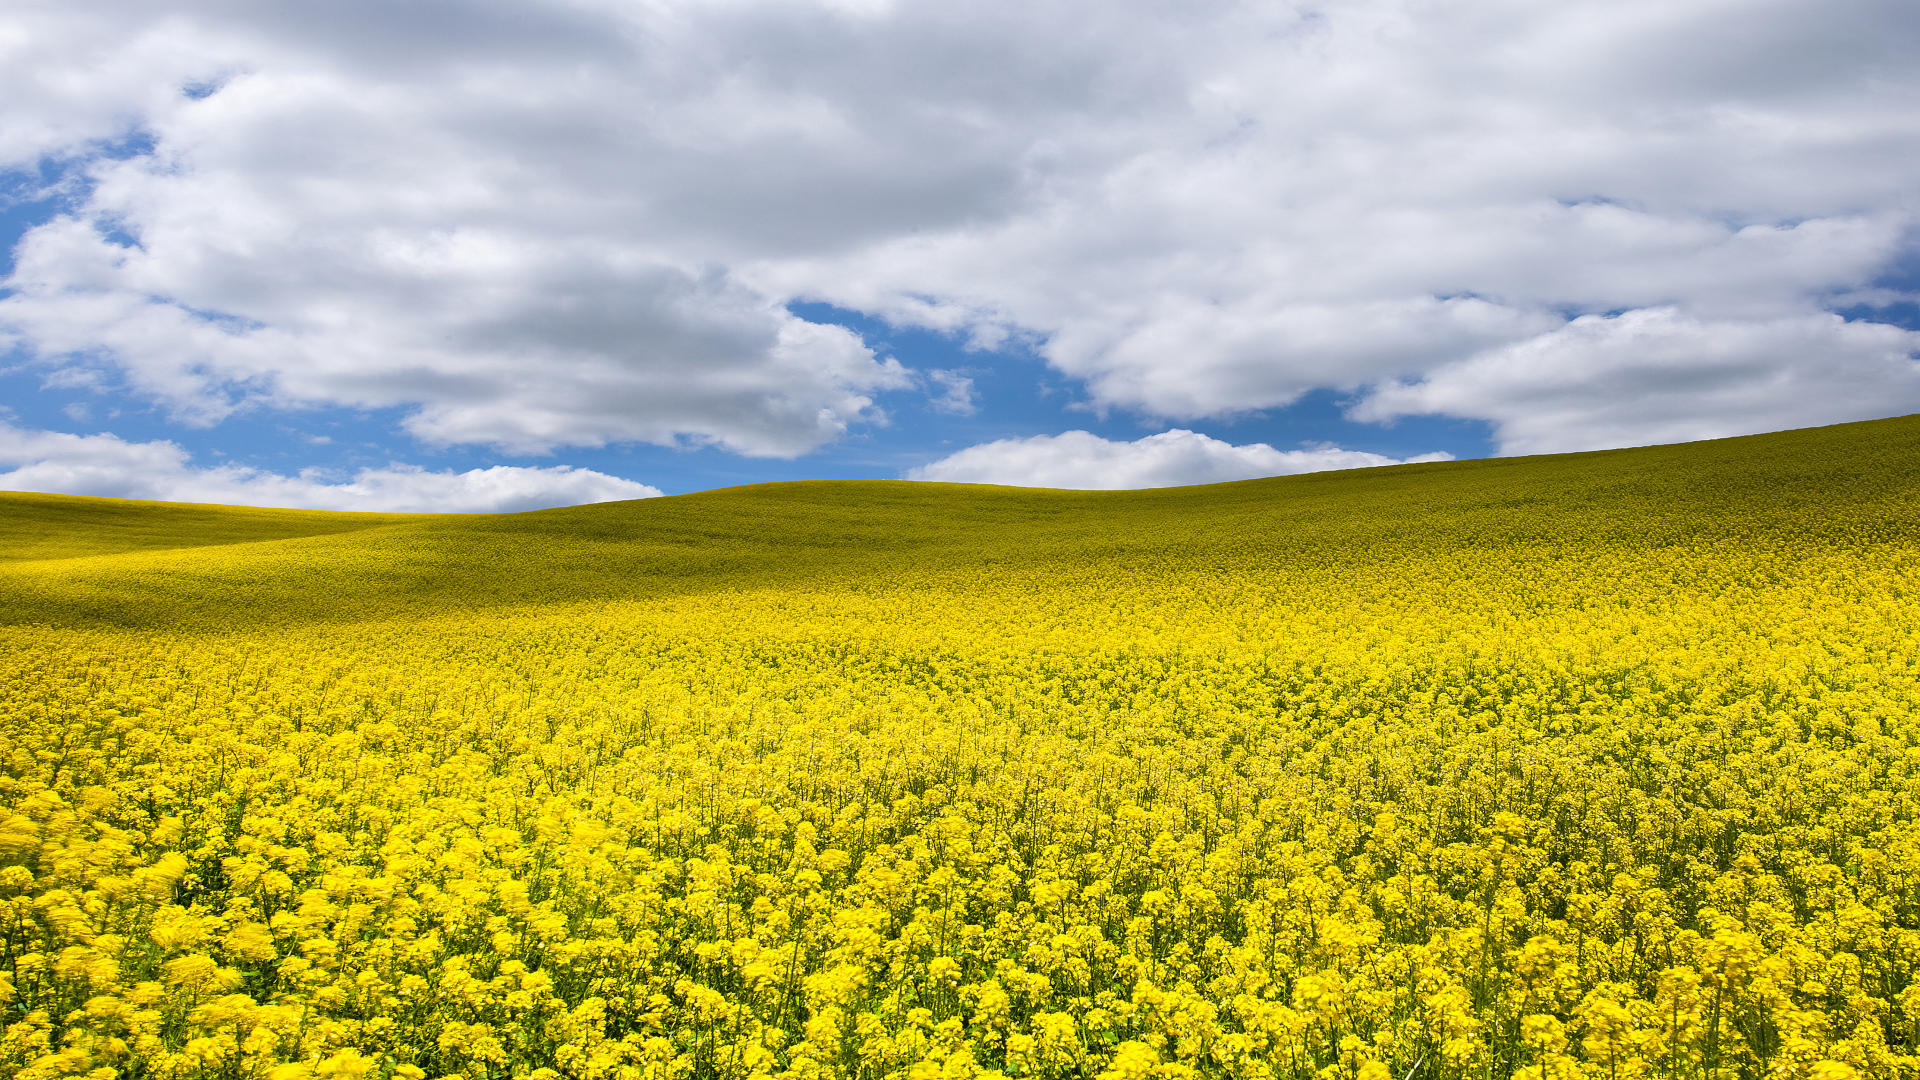 7004393-canola-fields